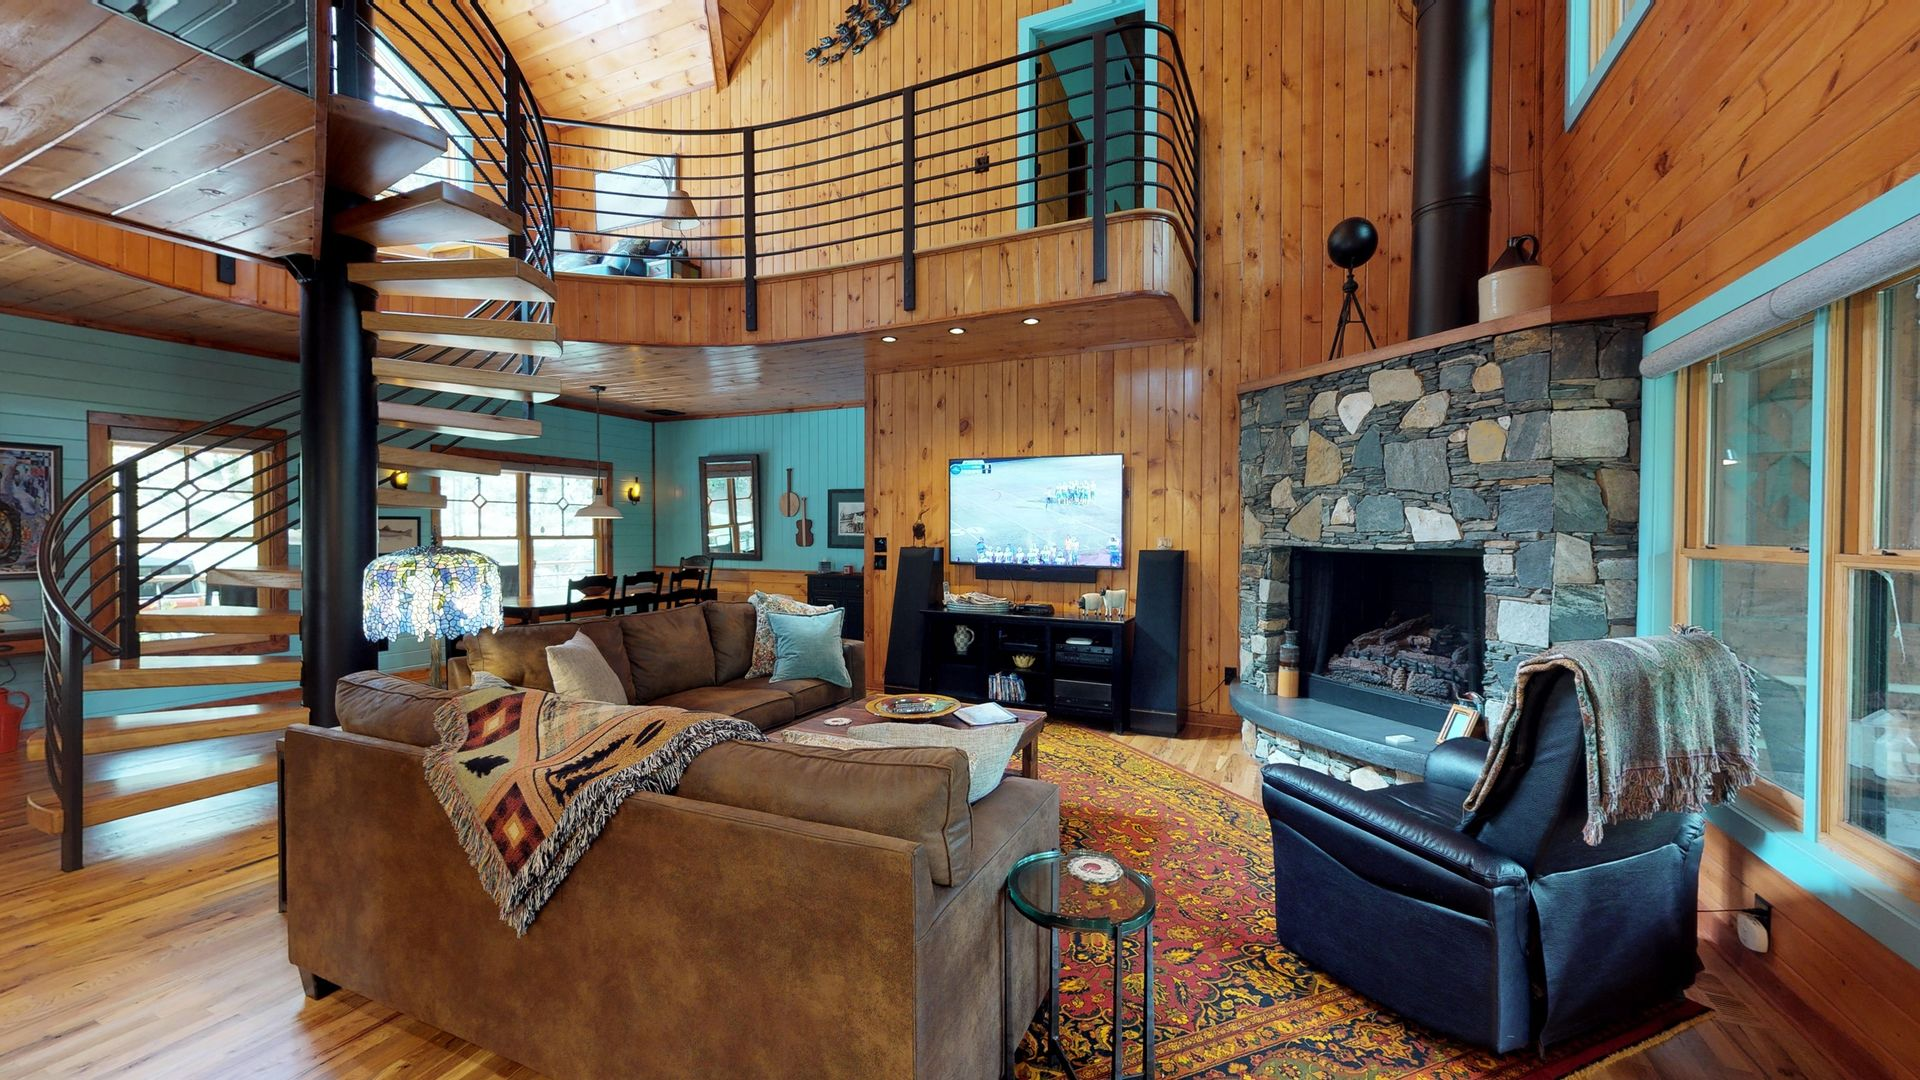 Living room with 2 couches and gas log fireplace